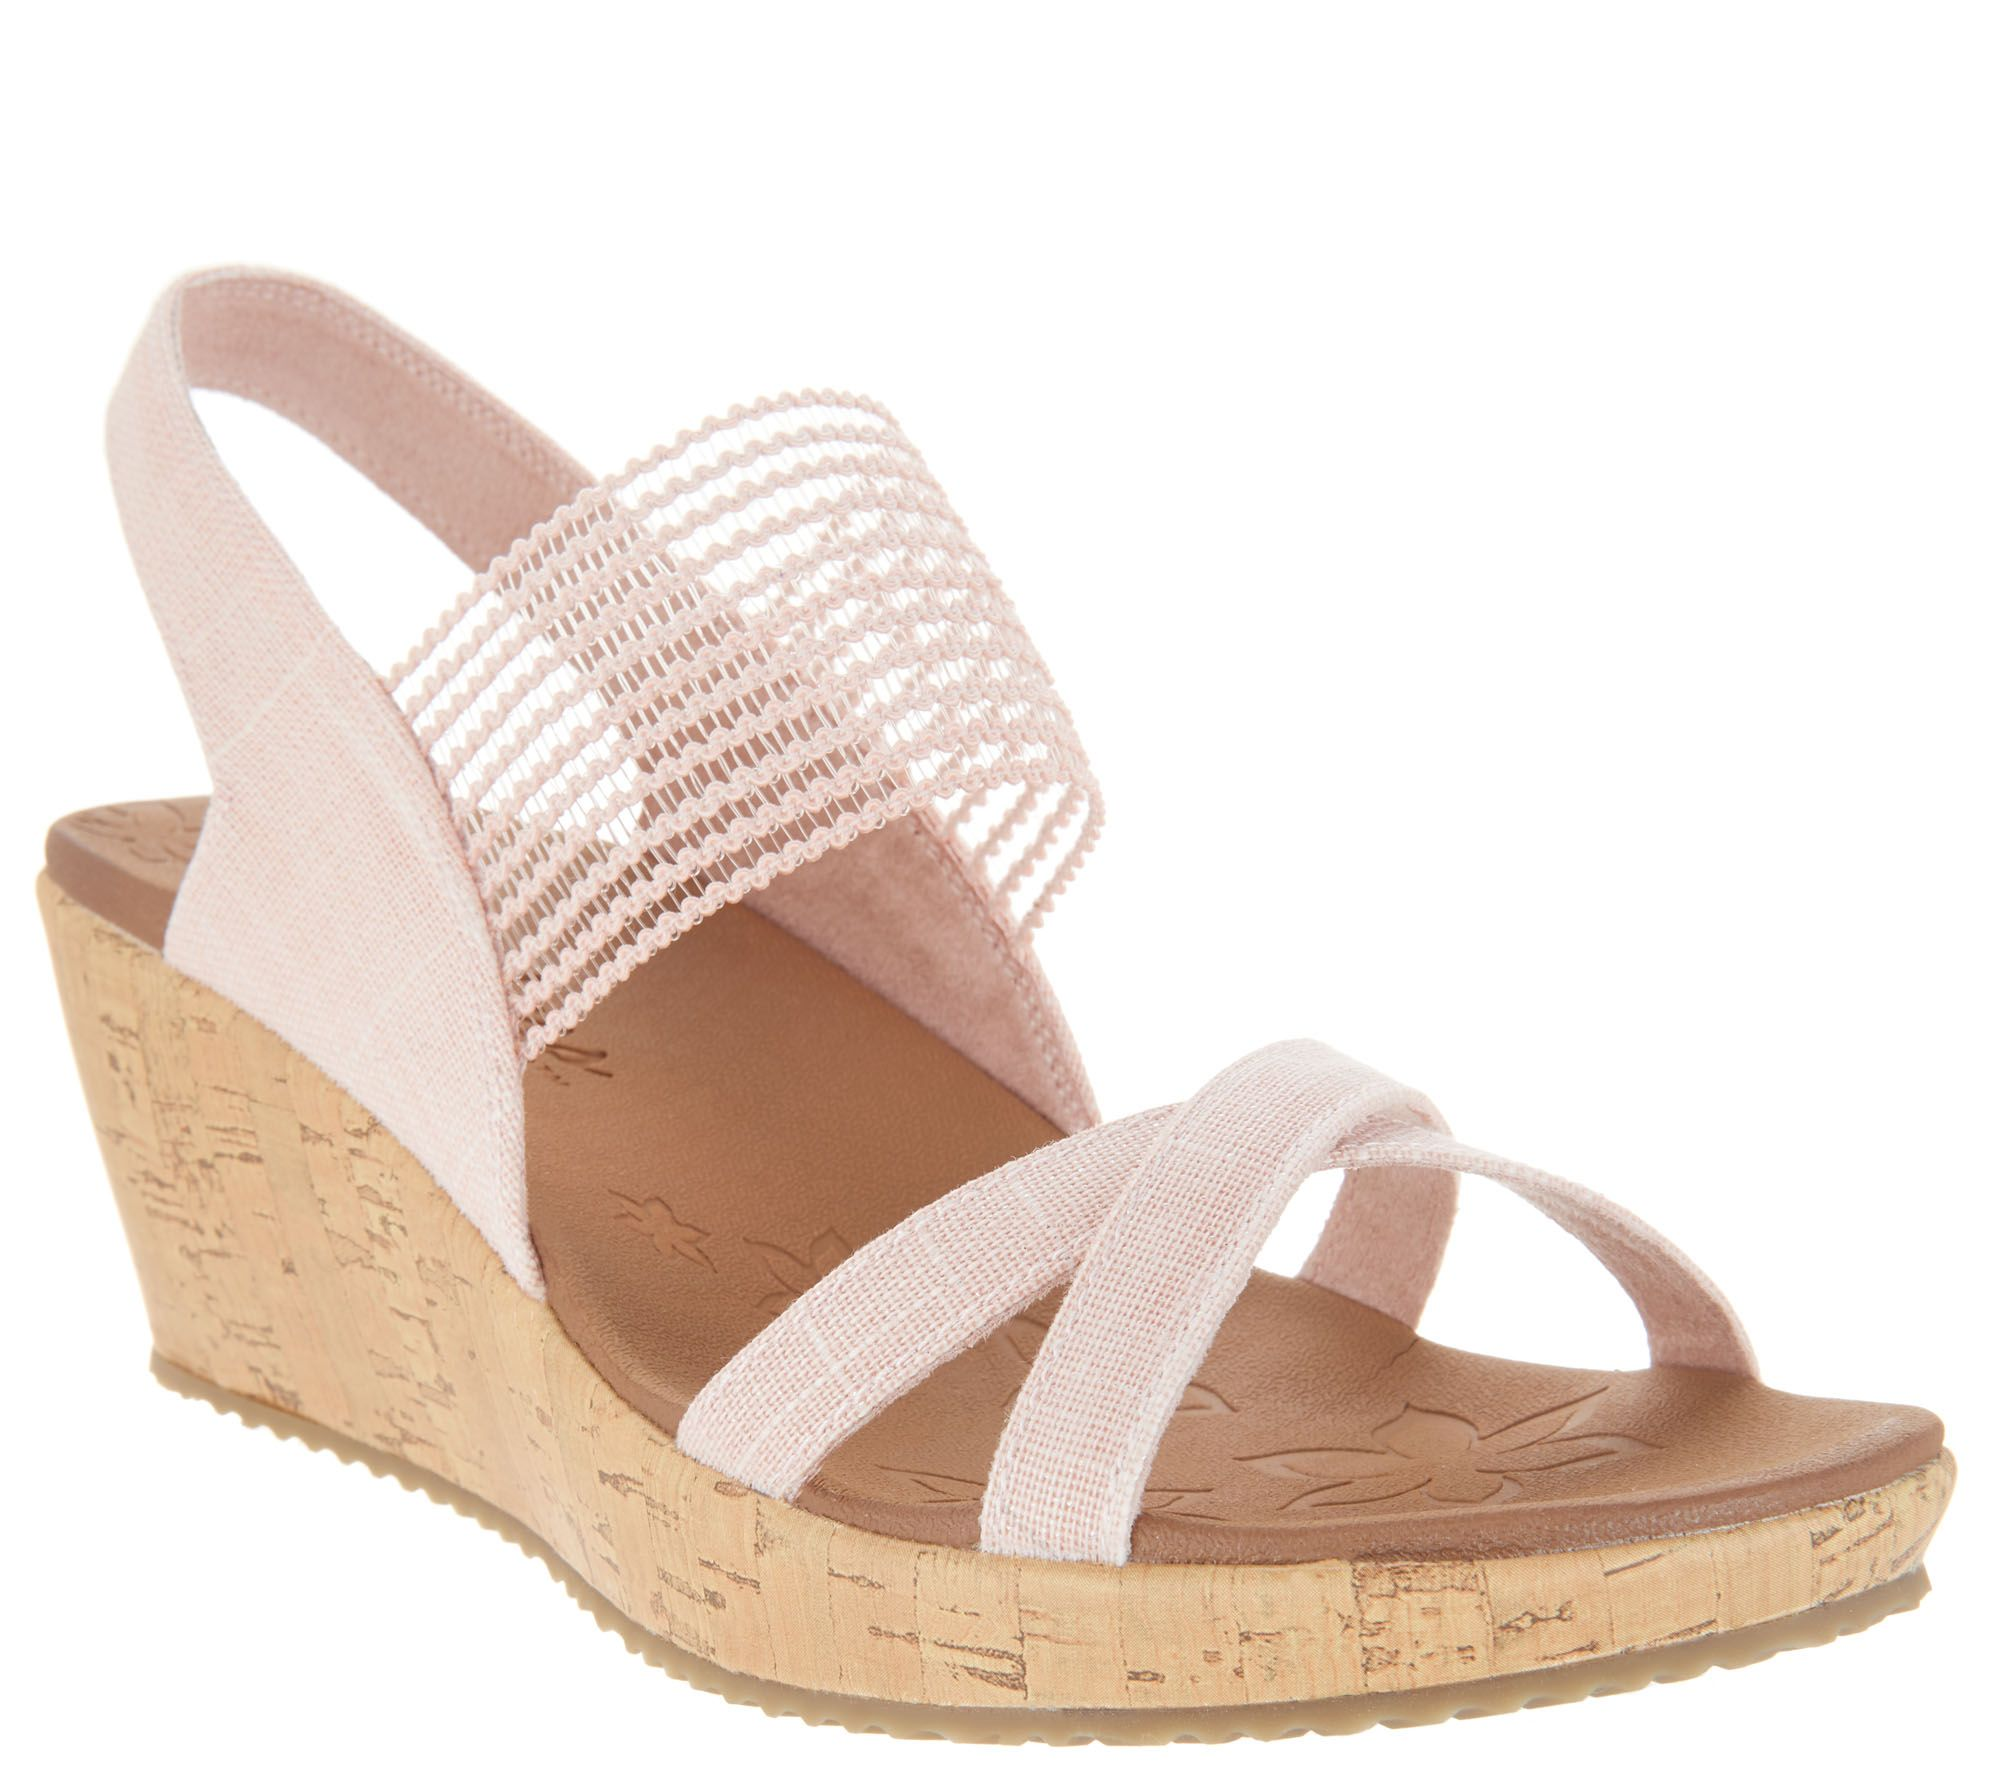 5e7ec9e52b3 Skechers Sling Back Stretch Wedges - Beverlee High Tea - Page 1 — QVC.com